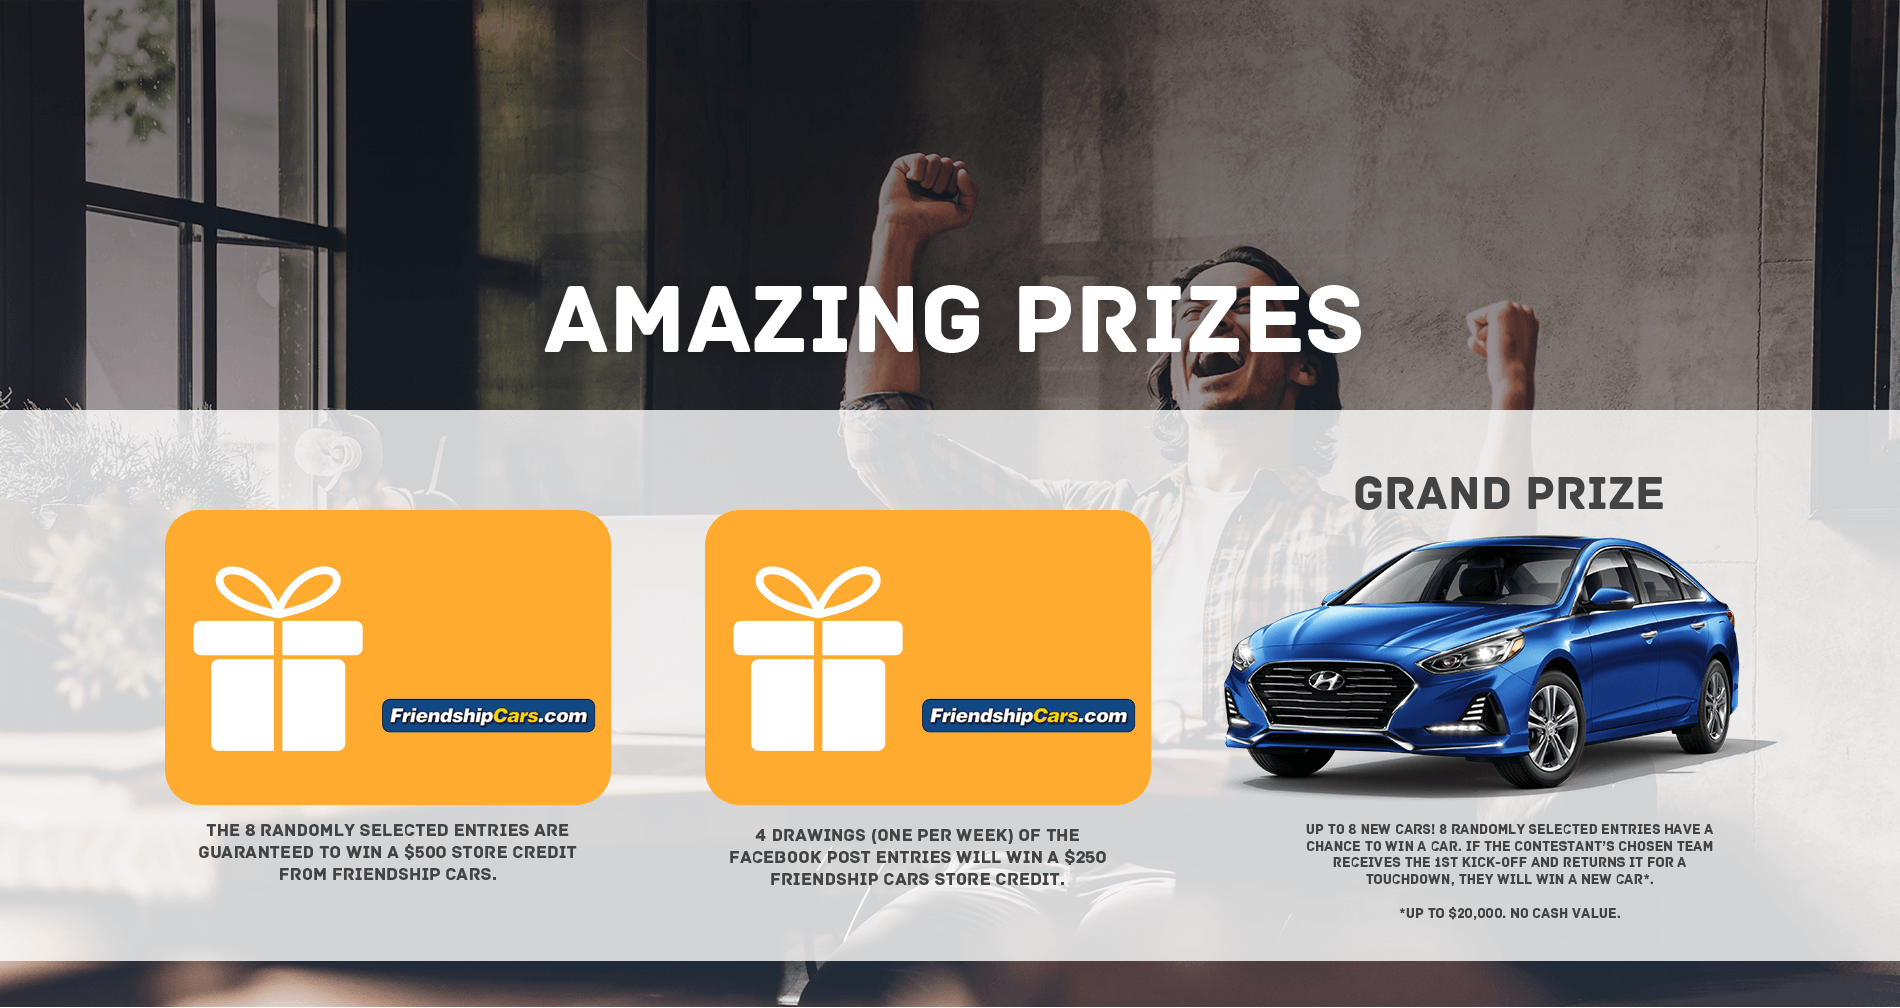 The 8 Randomly selected entries are guaranteed to win a $500 store credit from friendship cars. 4 Drawings (one per week) of the facebook post entries will win a $250 friendship cars store credit. Up to 8 new cars! 8 randomly selected entries have a chance to win a car. if hte contestant's chosen team receives the 1st kick-off and returns it for a touchdown, they will win a new car* *up to $20,000. No cash Value.